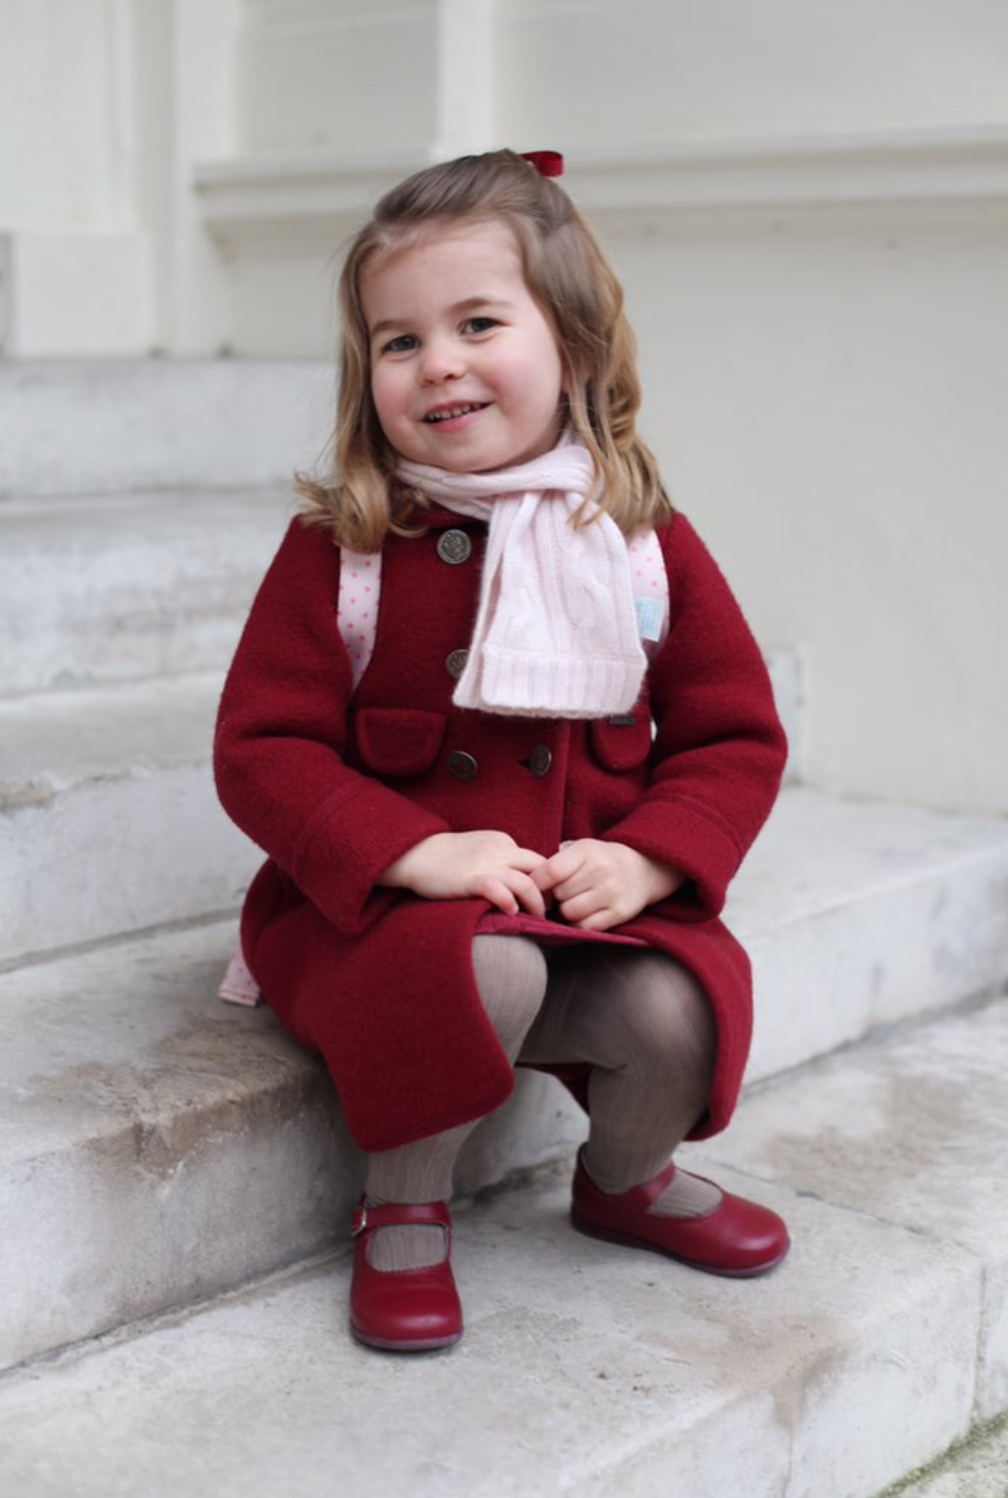 Princess Charlotte Is Chatty and Confident Going Into Nursery School